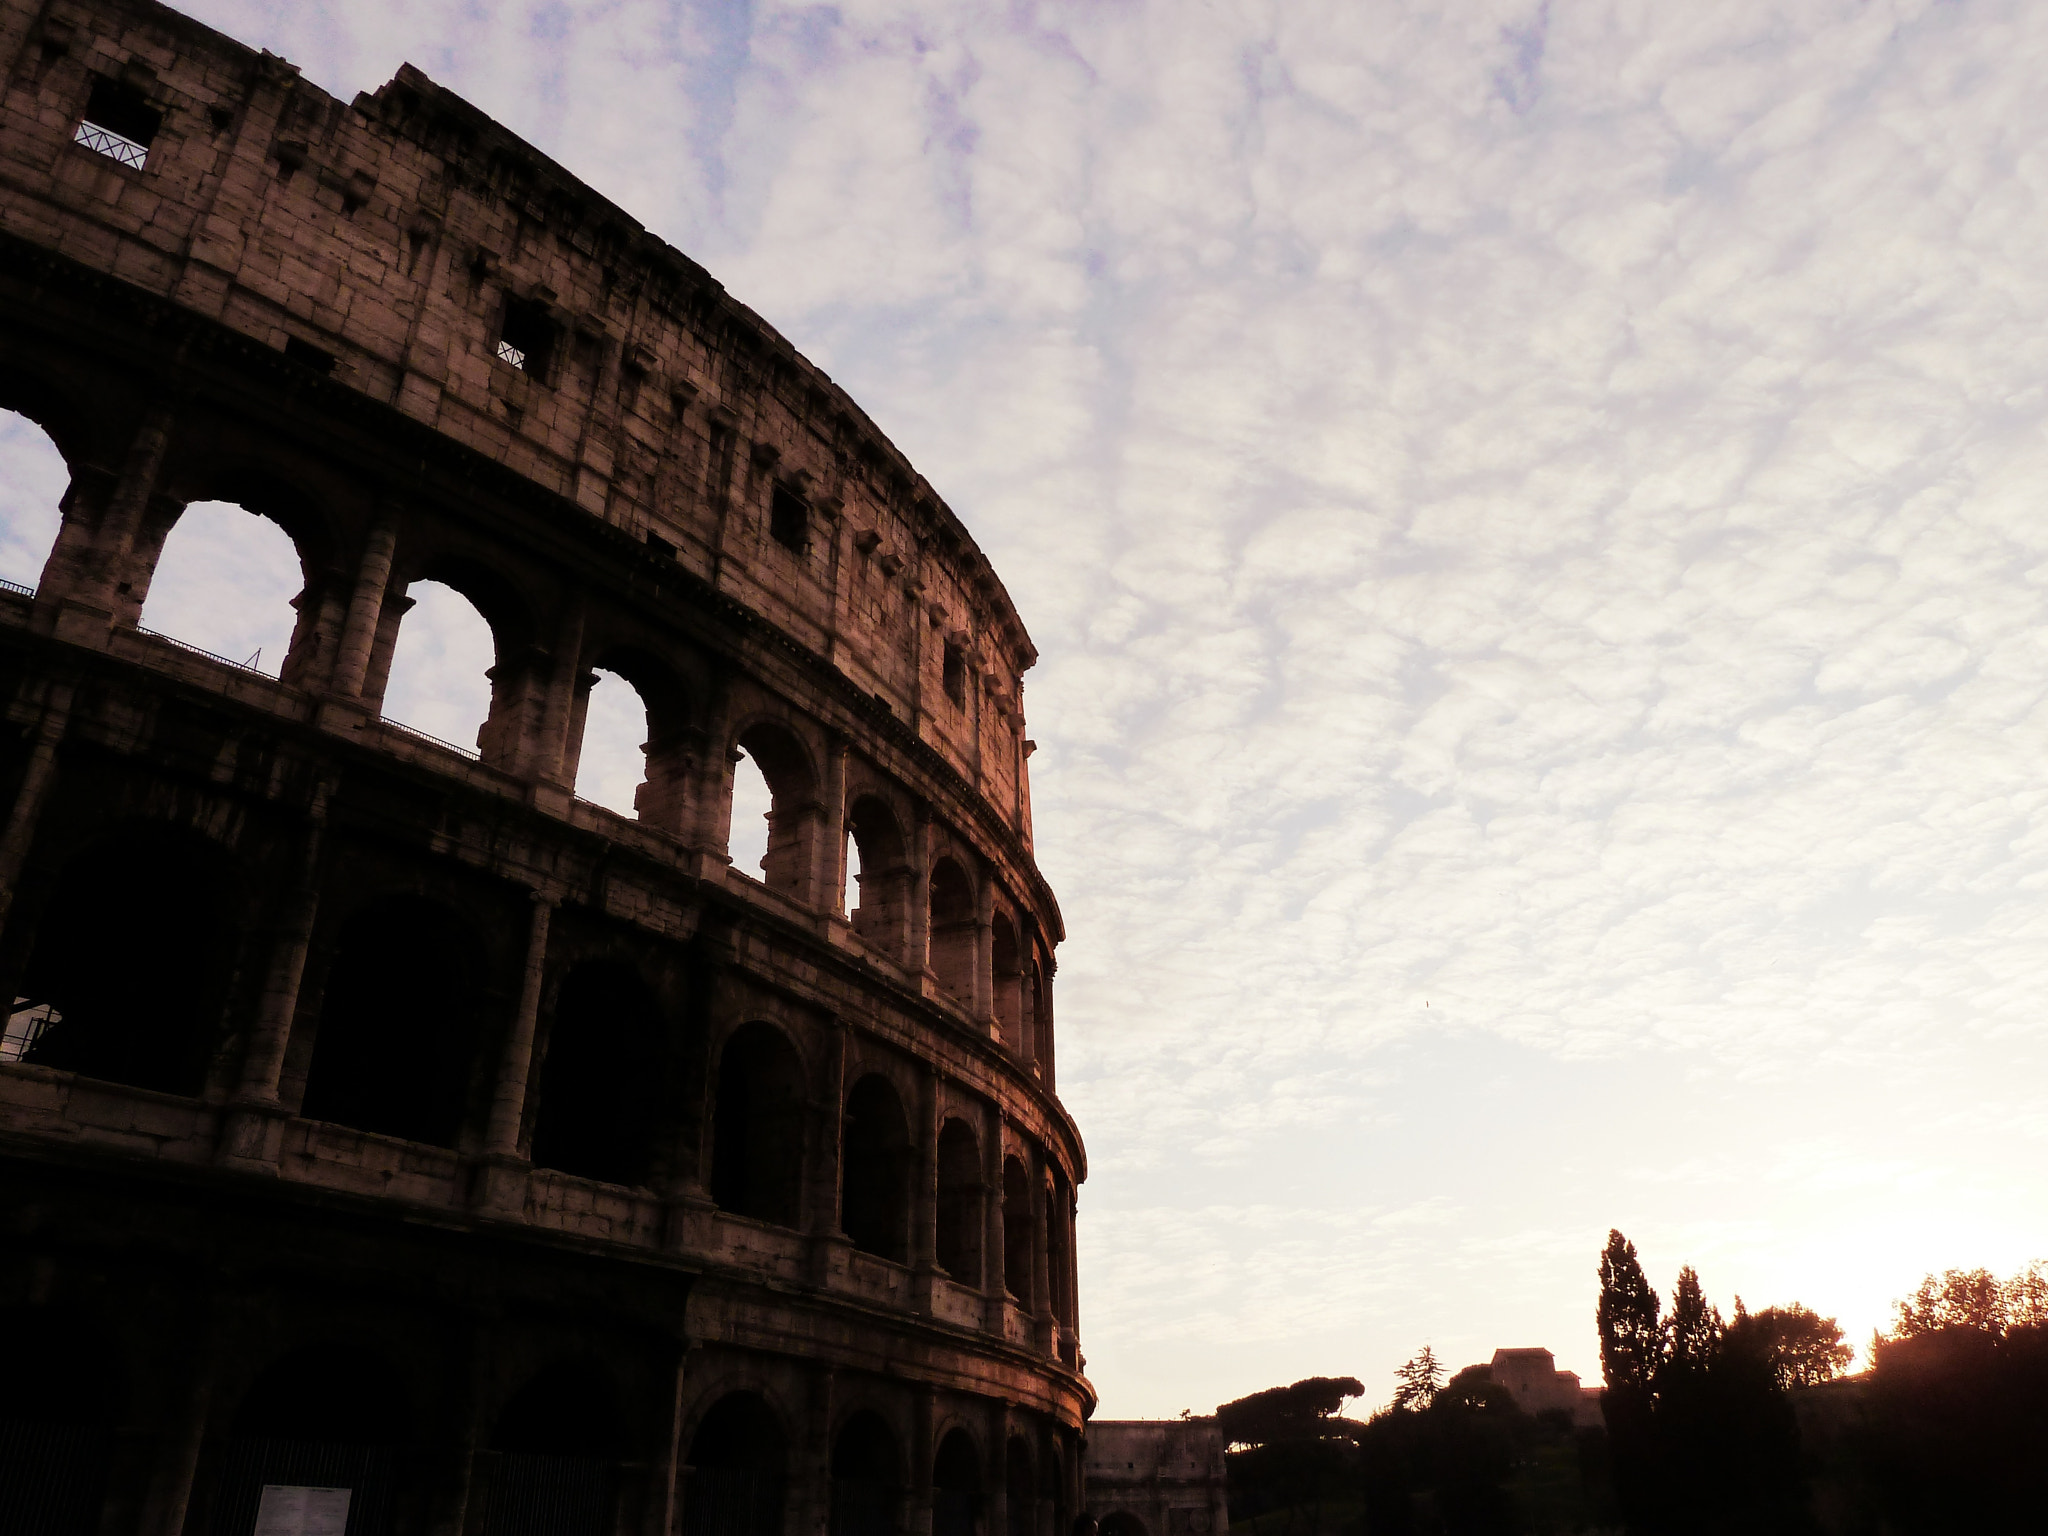 Photograph Colosseum at dusk light by Michael Papandonis on 500px